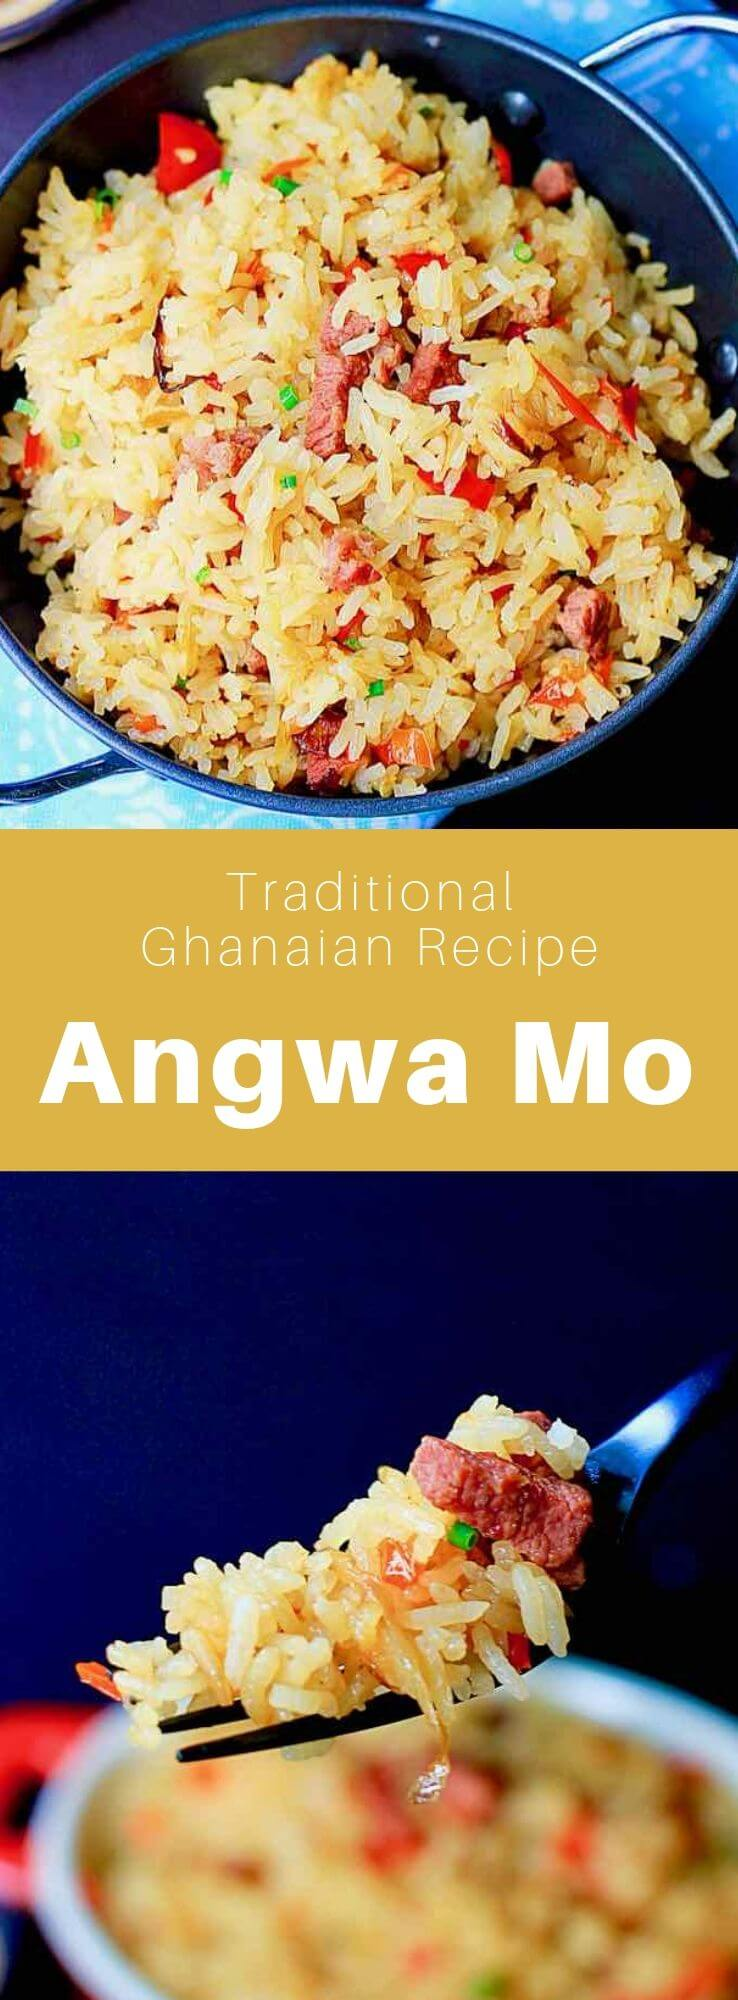 Angwa Mo (or angwamu) is a delicious traditional Ghanaian dish consisting of fried rice that is often cooked with salted beef (tolo beef). #Ghana #GhanaianCuisine #GhanaianFood #GhanaianRecipe #AfricanCuisine #AfricanFood #AfricanRecipe #WorldCuisine #196flavors